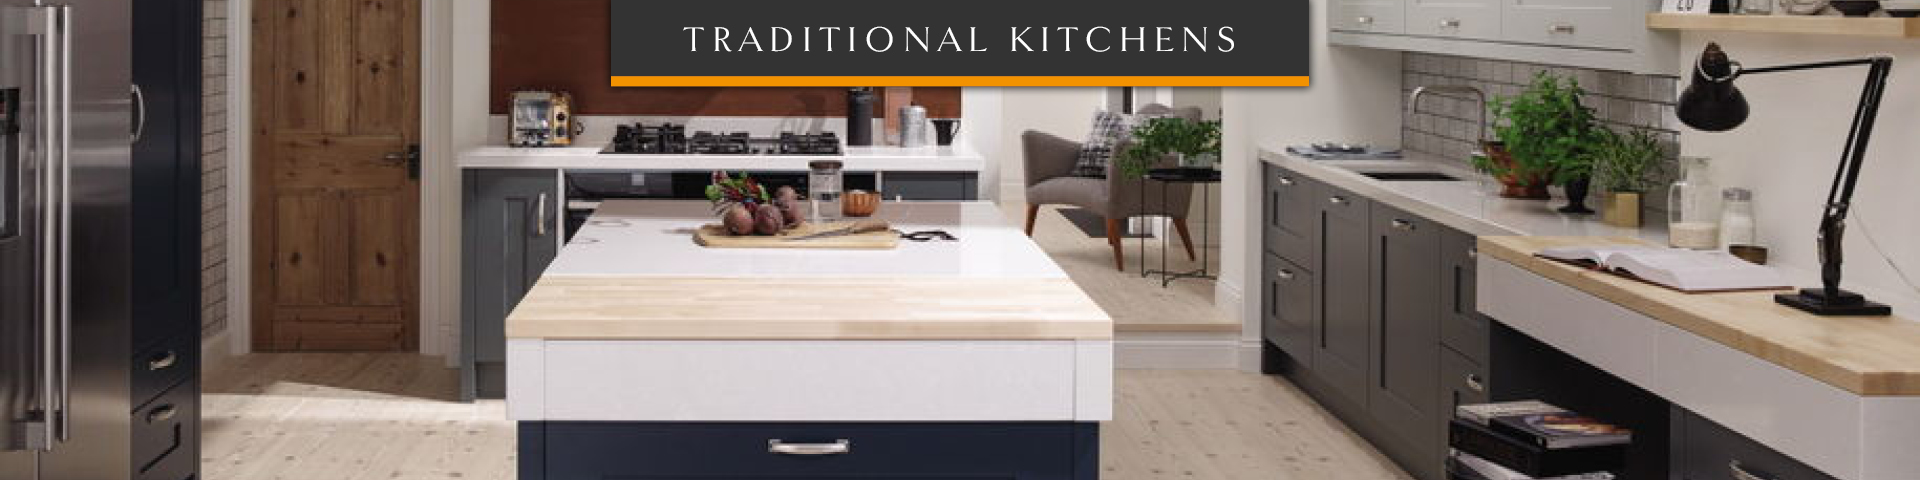 Traditional Kitchens Glasgow